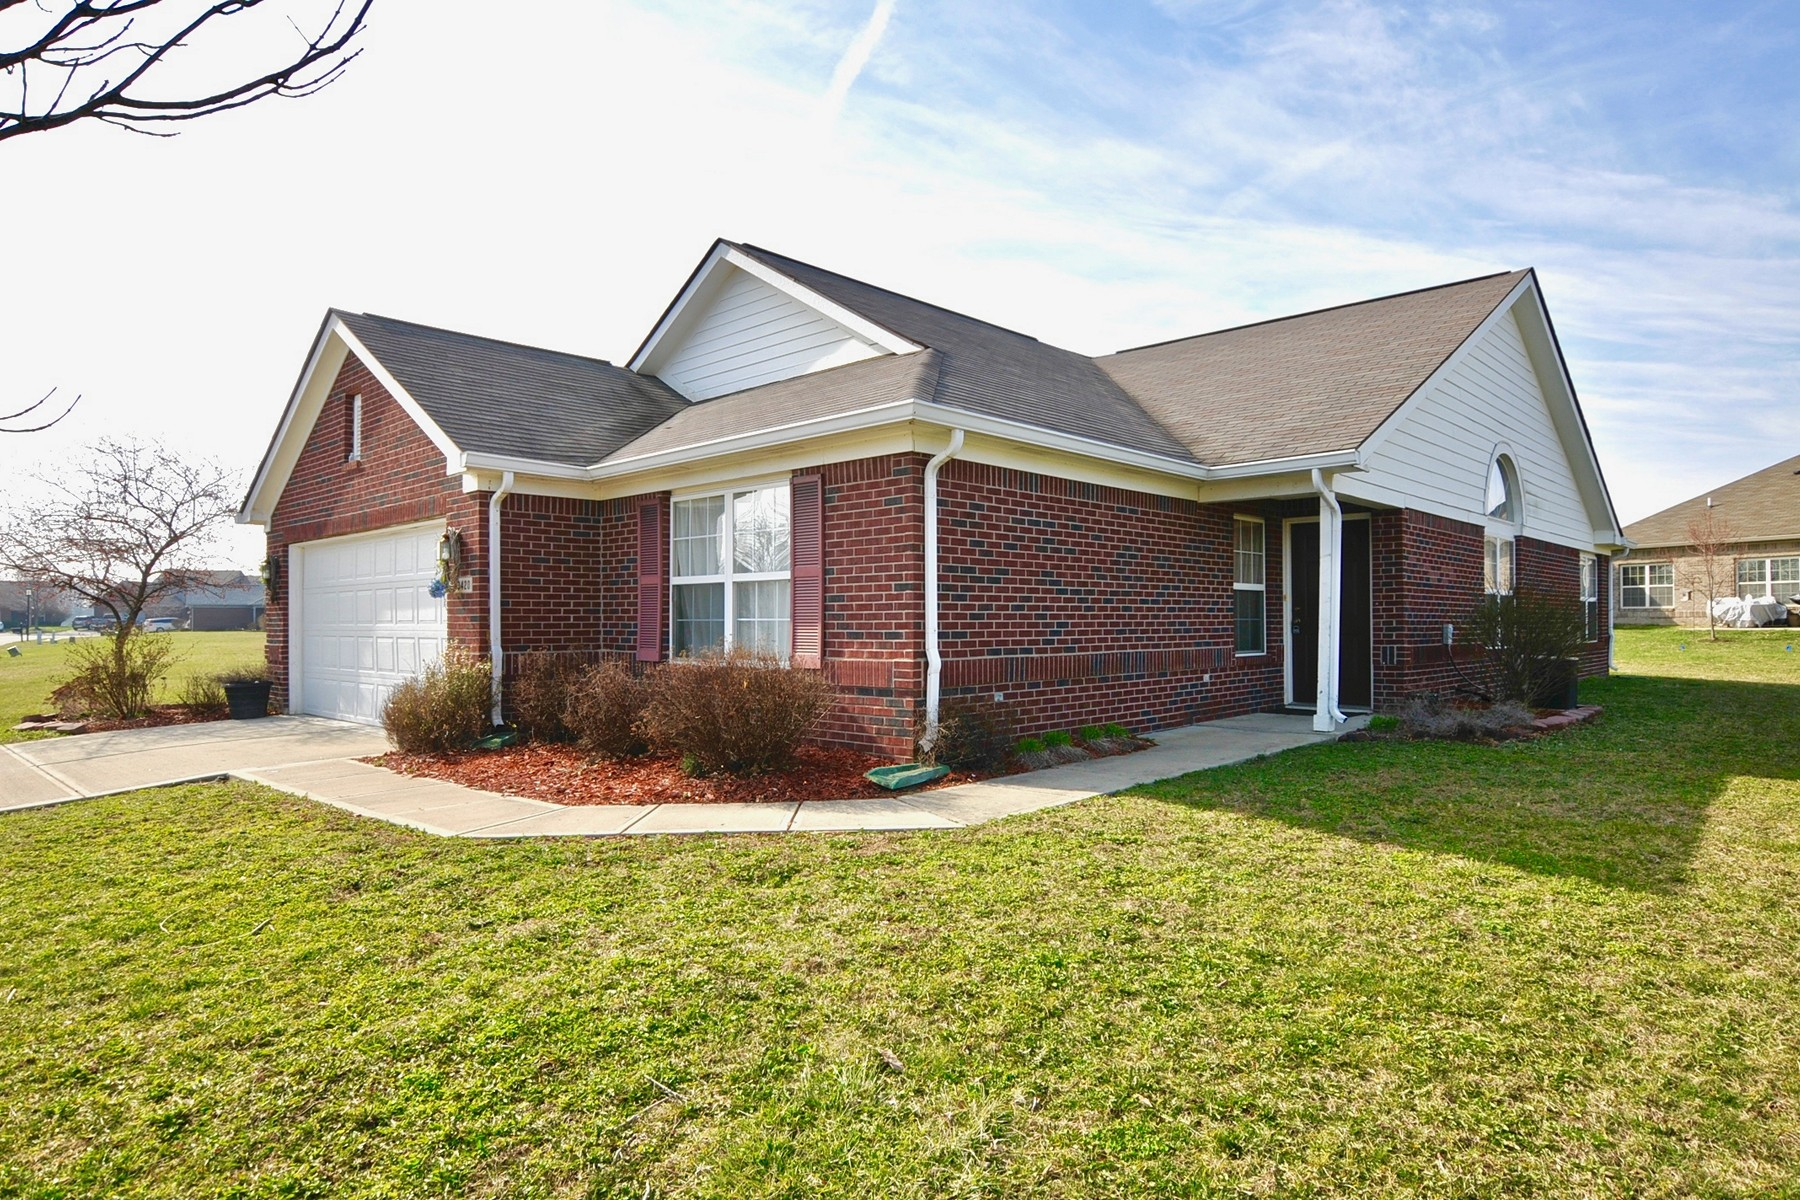 Single Family Home for Sale at Well Maintained Ranch Home 13420 N. Carefree Court Camby, Indiana 46113 United States